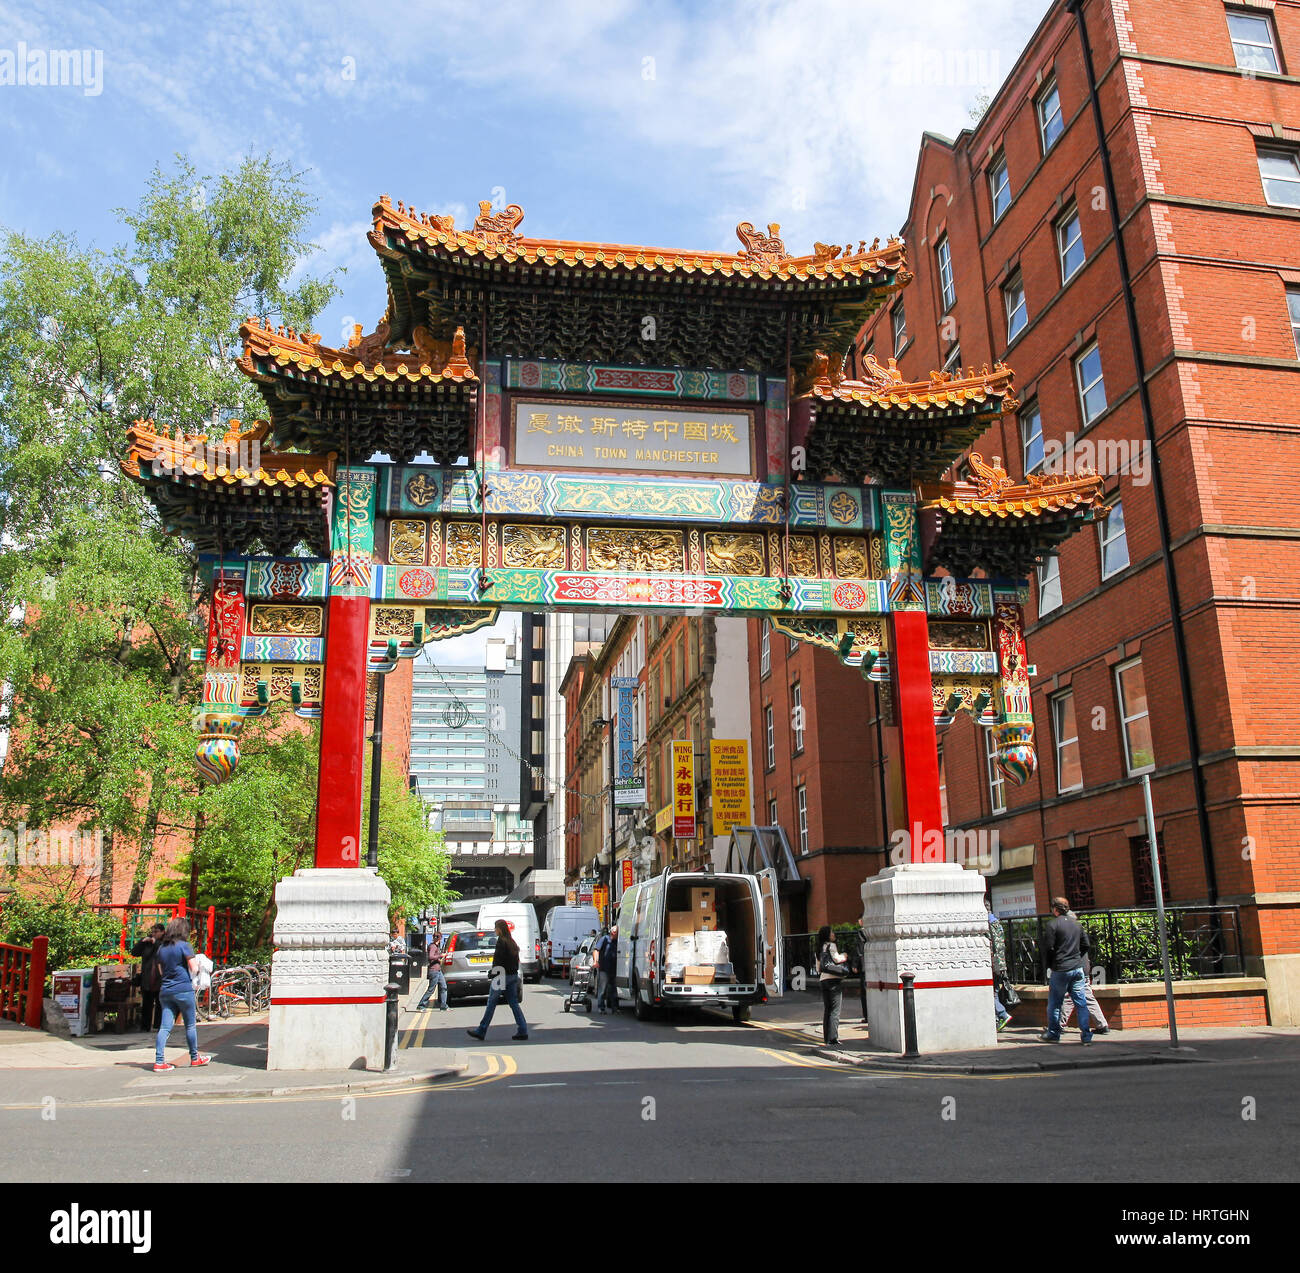 The ornate entrance arch to China Town Faulkner Street Manchester city centre Manchester England UK - Stock Image